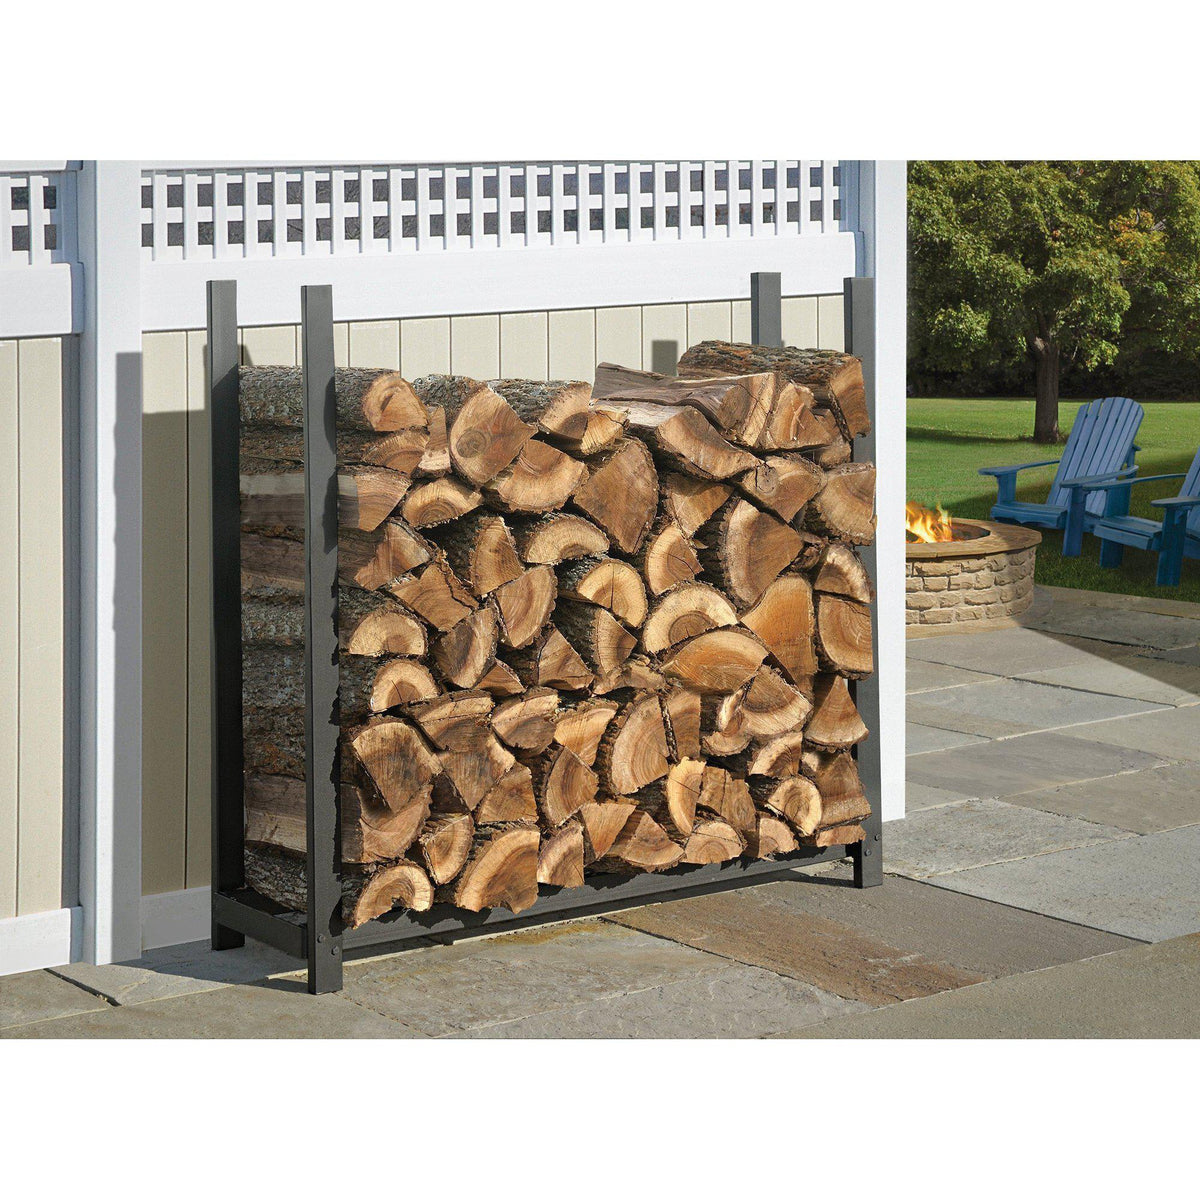 ShelterLogic Ultra Duty Firewood Rack without Cover